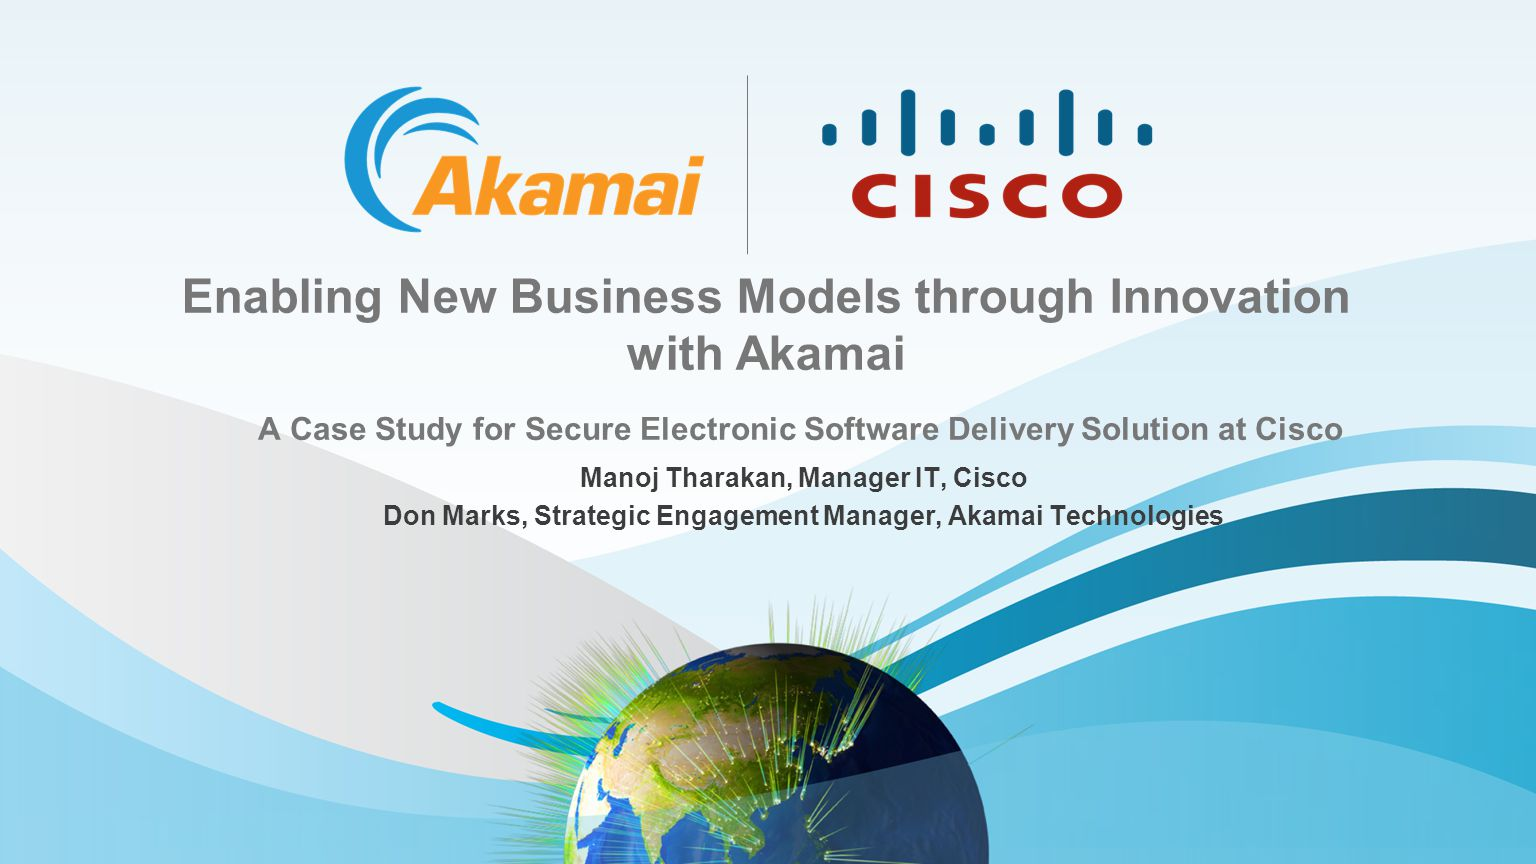 Enabling New Business Models through Innovation with Akamai A Case Study for Secure Electronic Software Delivery Solution at Cisco Manoj Tharakan, Manager IT, Cisco Don Marks, Strategic Engagement Manager, Akamai Technologies